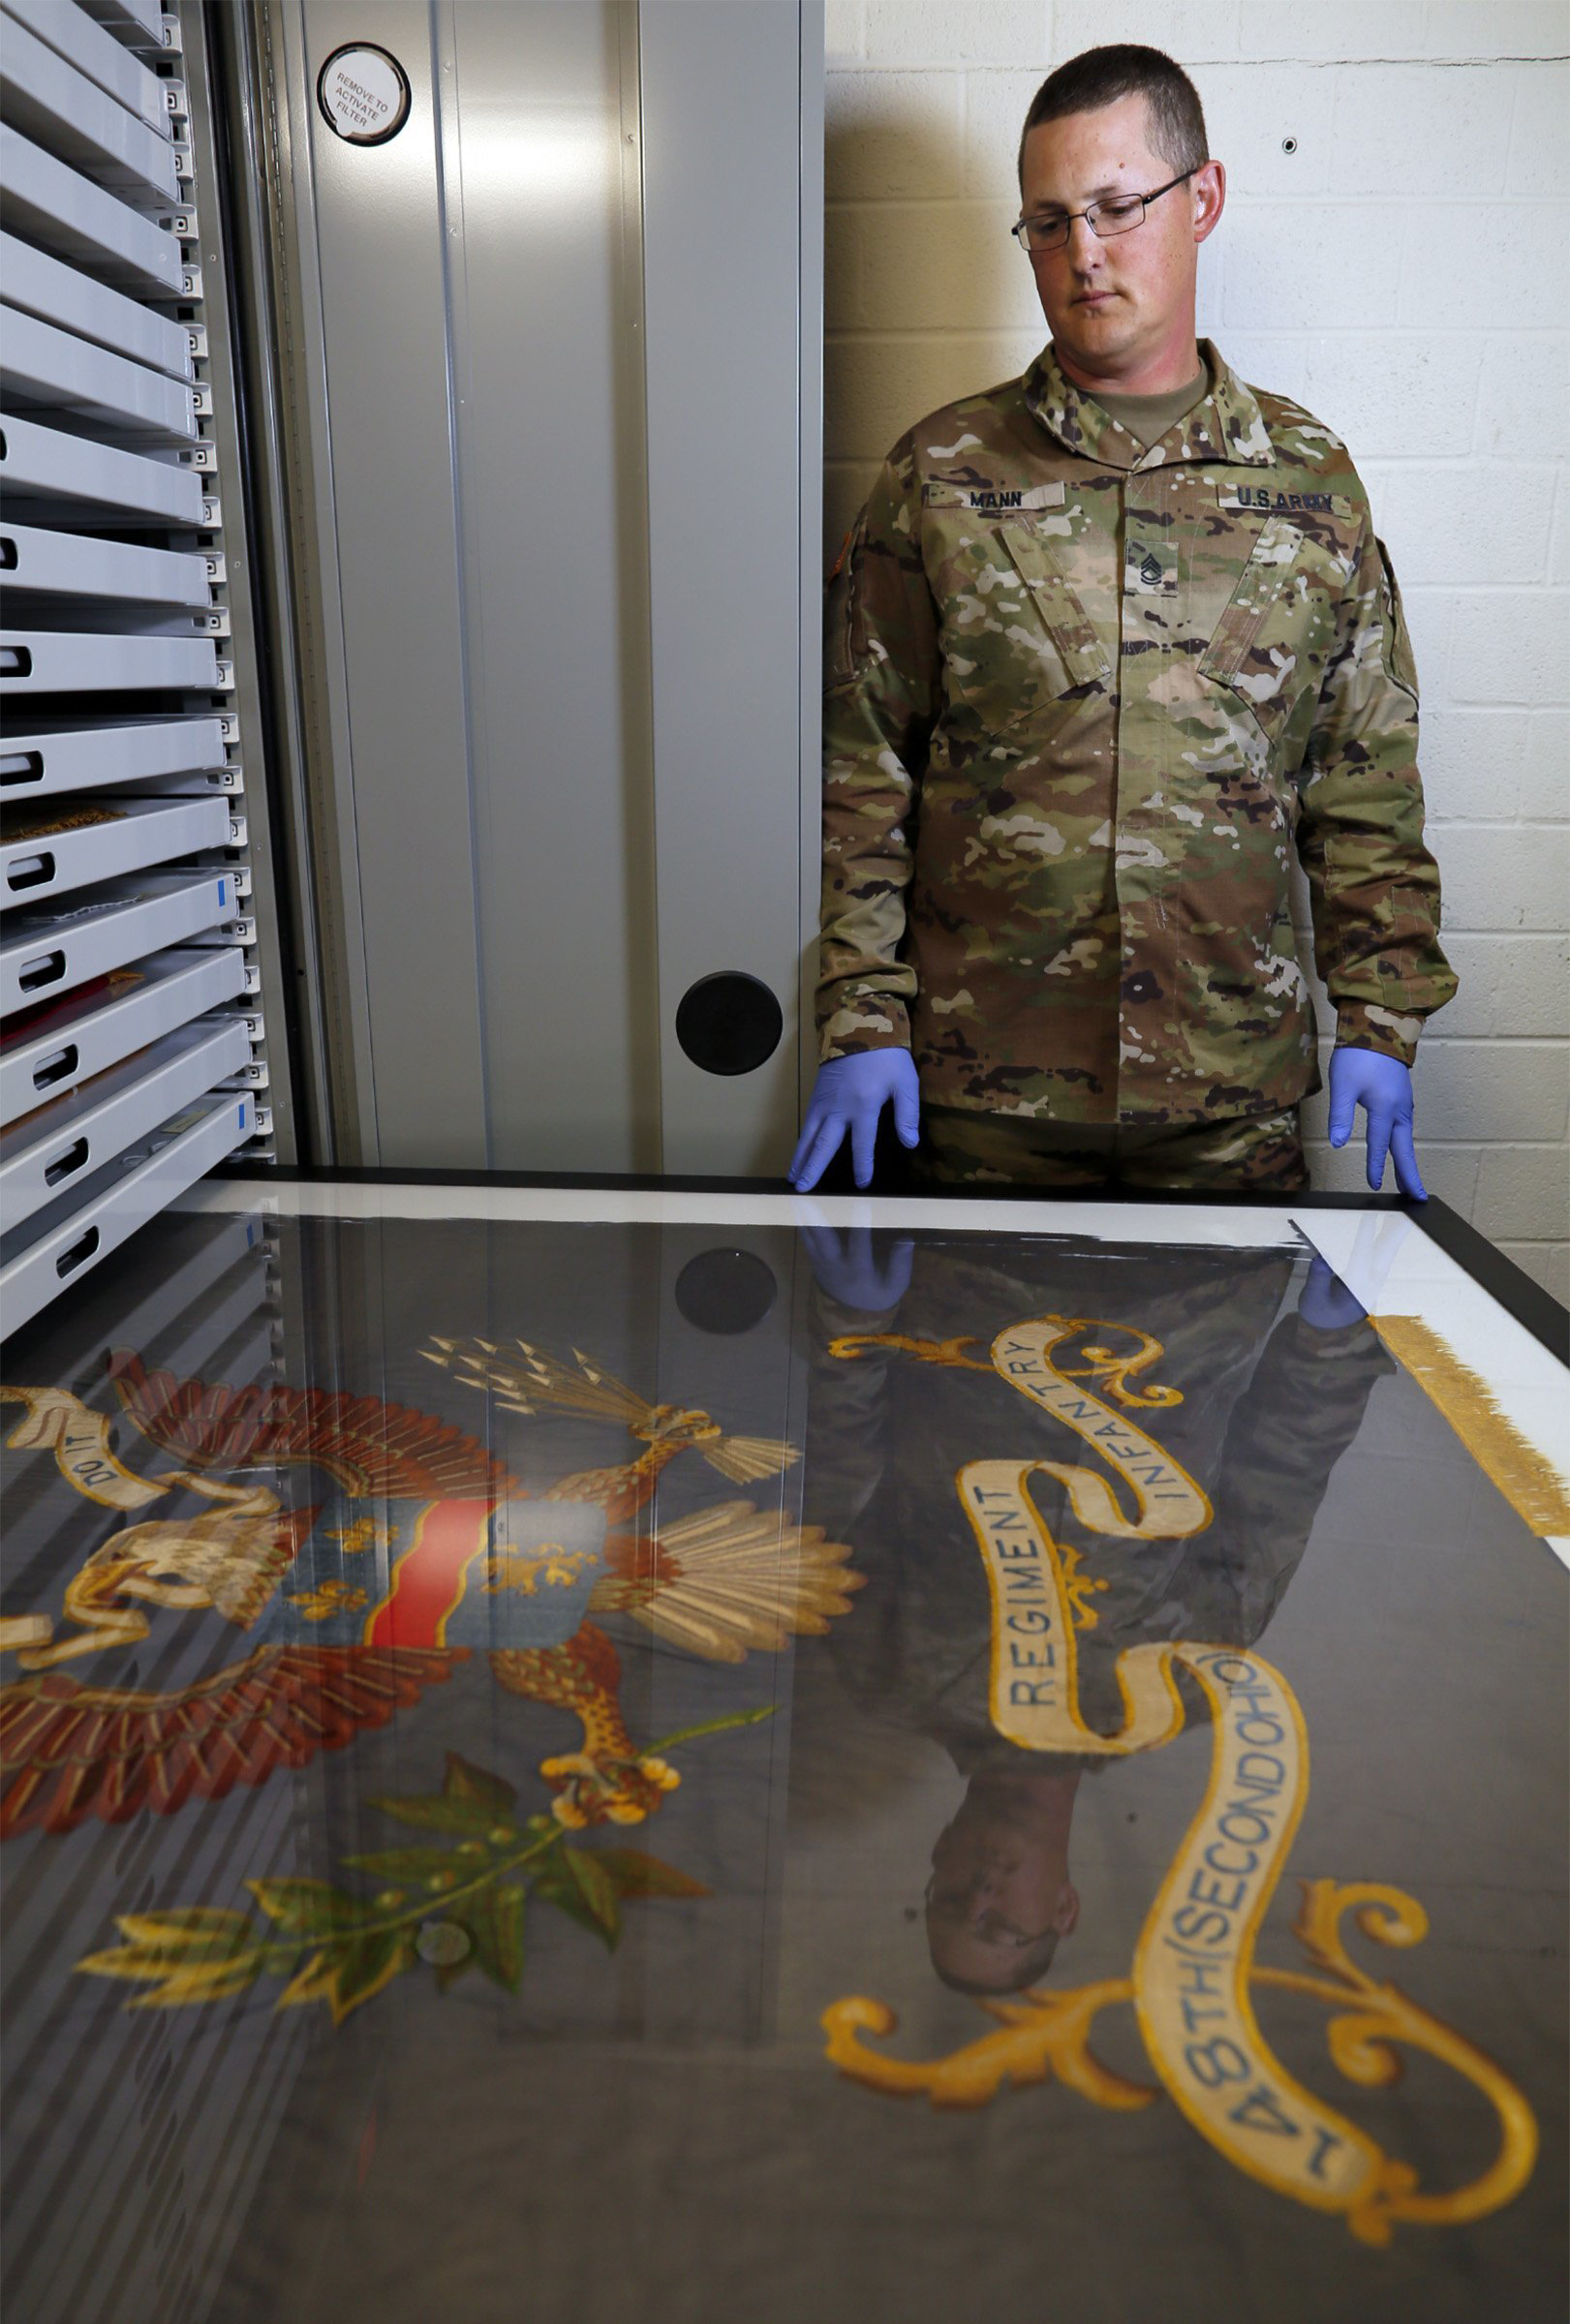 In this July 17, 2018, photo, Sgt. 1st Class Josh Mann, the Ohio Army National Guard historian, looks at a Civil War battle flag from the 148th Infantry Regiment inside the Beightler Armory in Columbus, Ohio. The Ohio National Guard is celebrating its 230 years of service. (Adam Cairns/The Columbus Dispatch via AP)